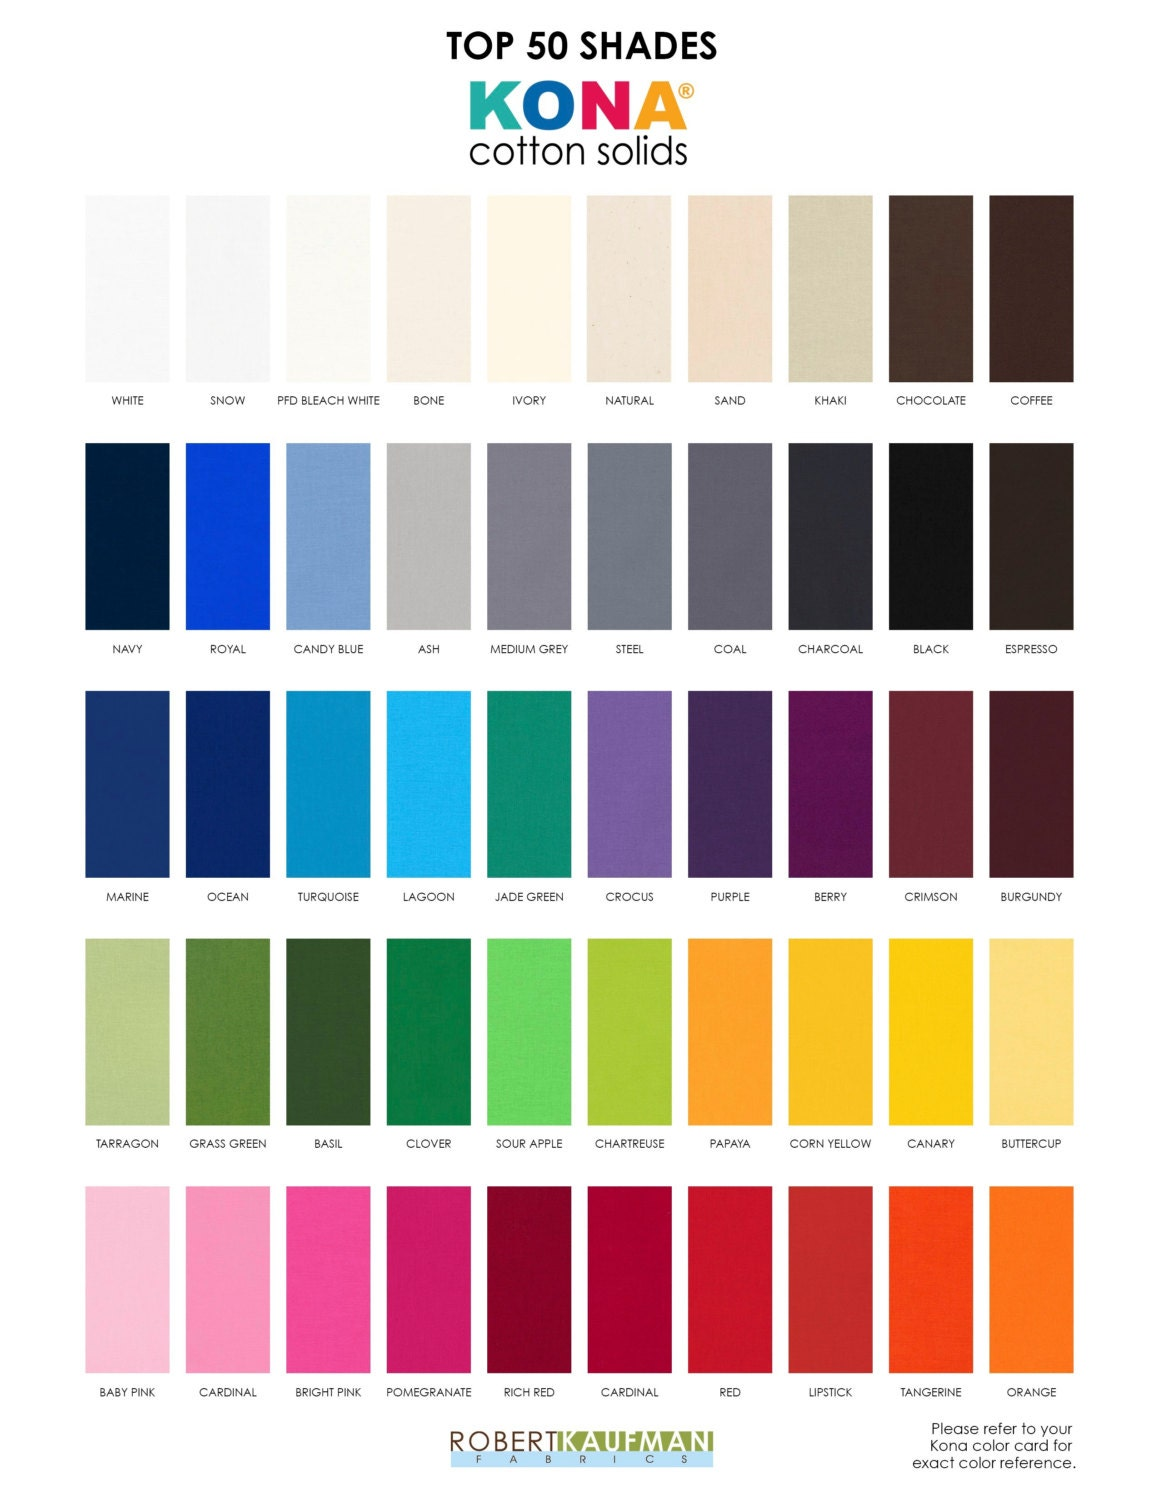 2016 kona color card kona swatches 303 colors included quilting 675 shipping nvjuhfo Images